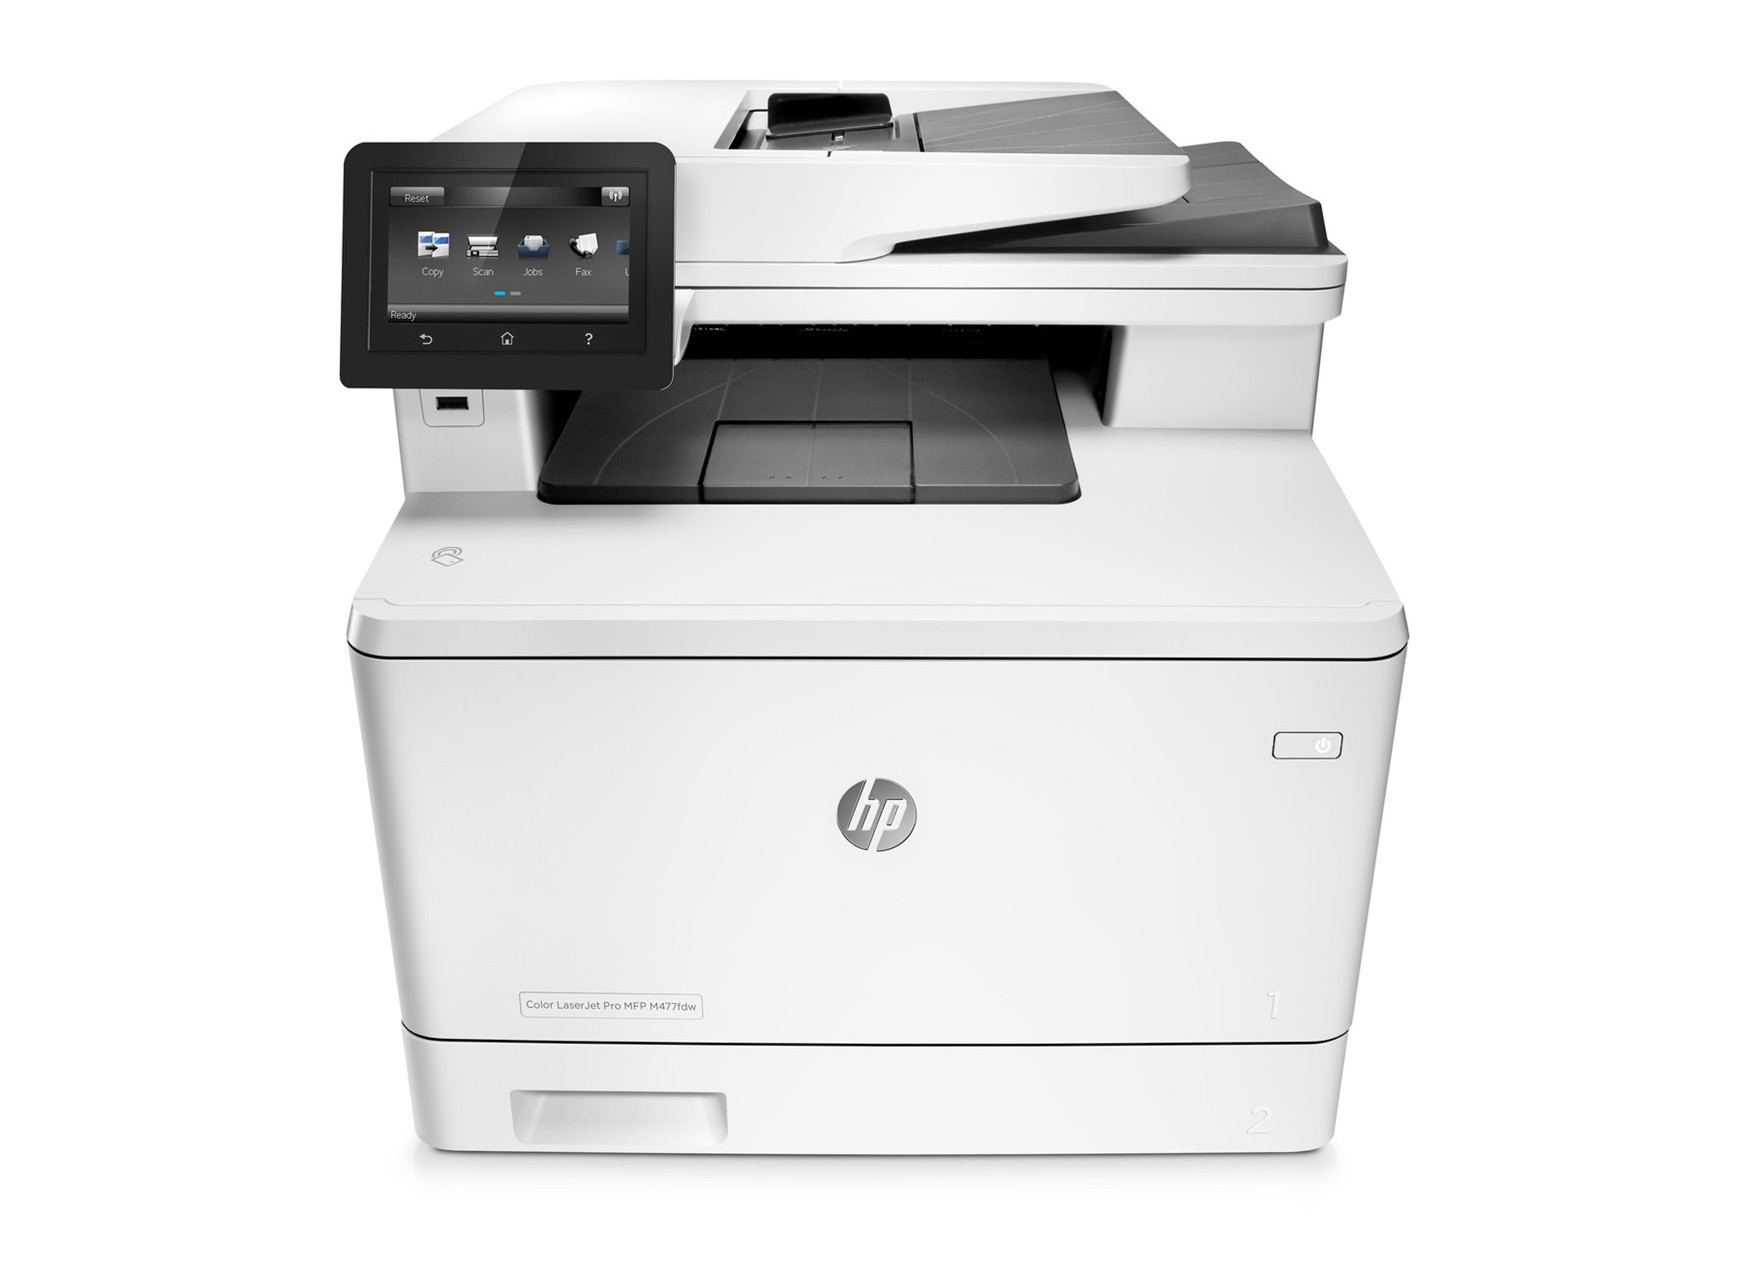 did you know that printers are a major cyber attack vector